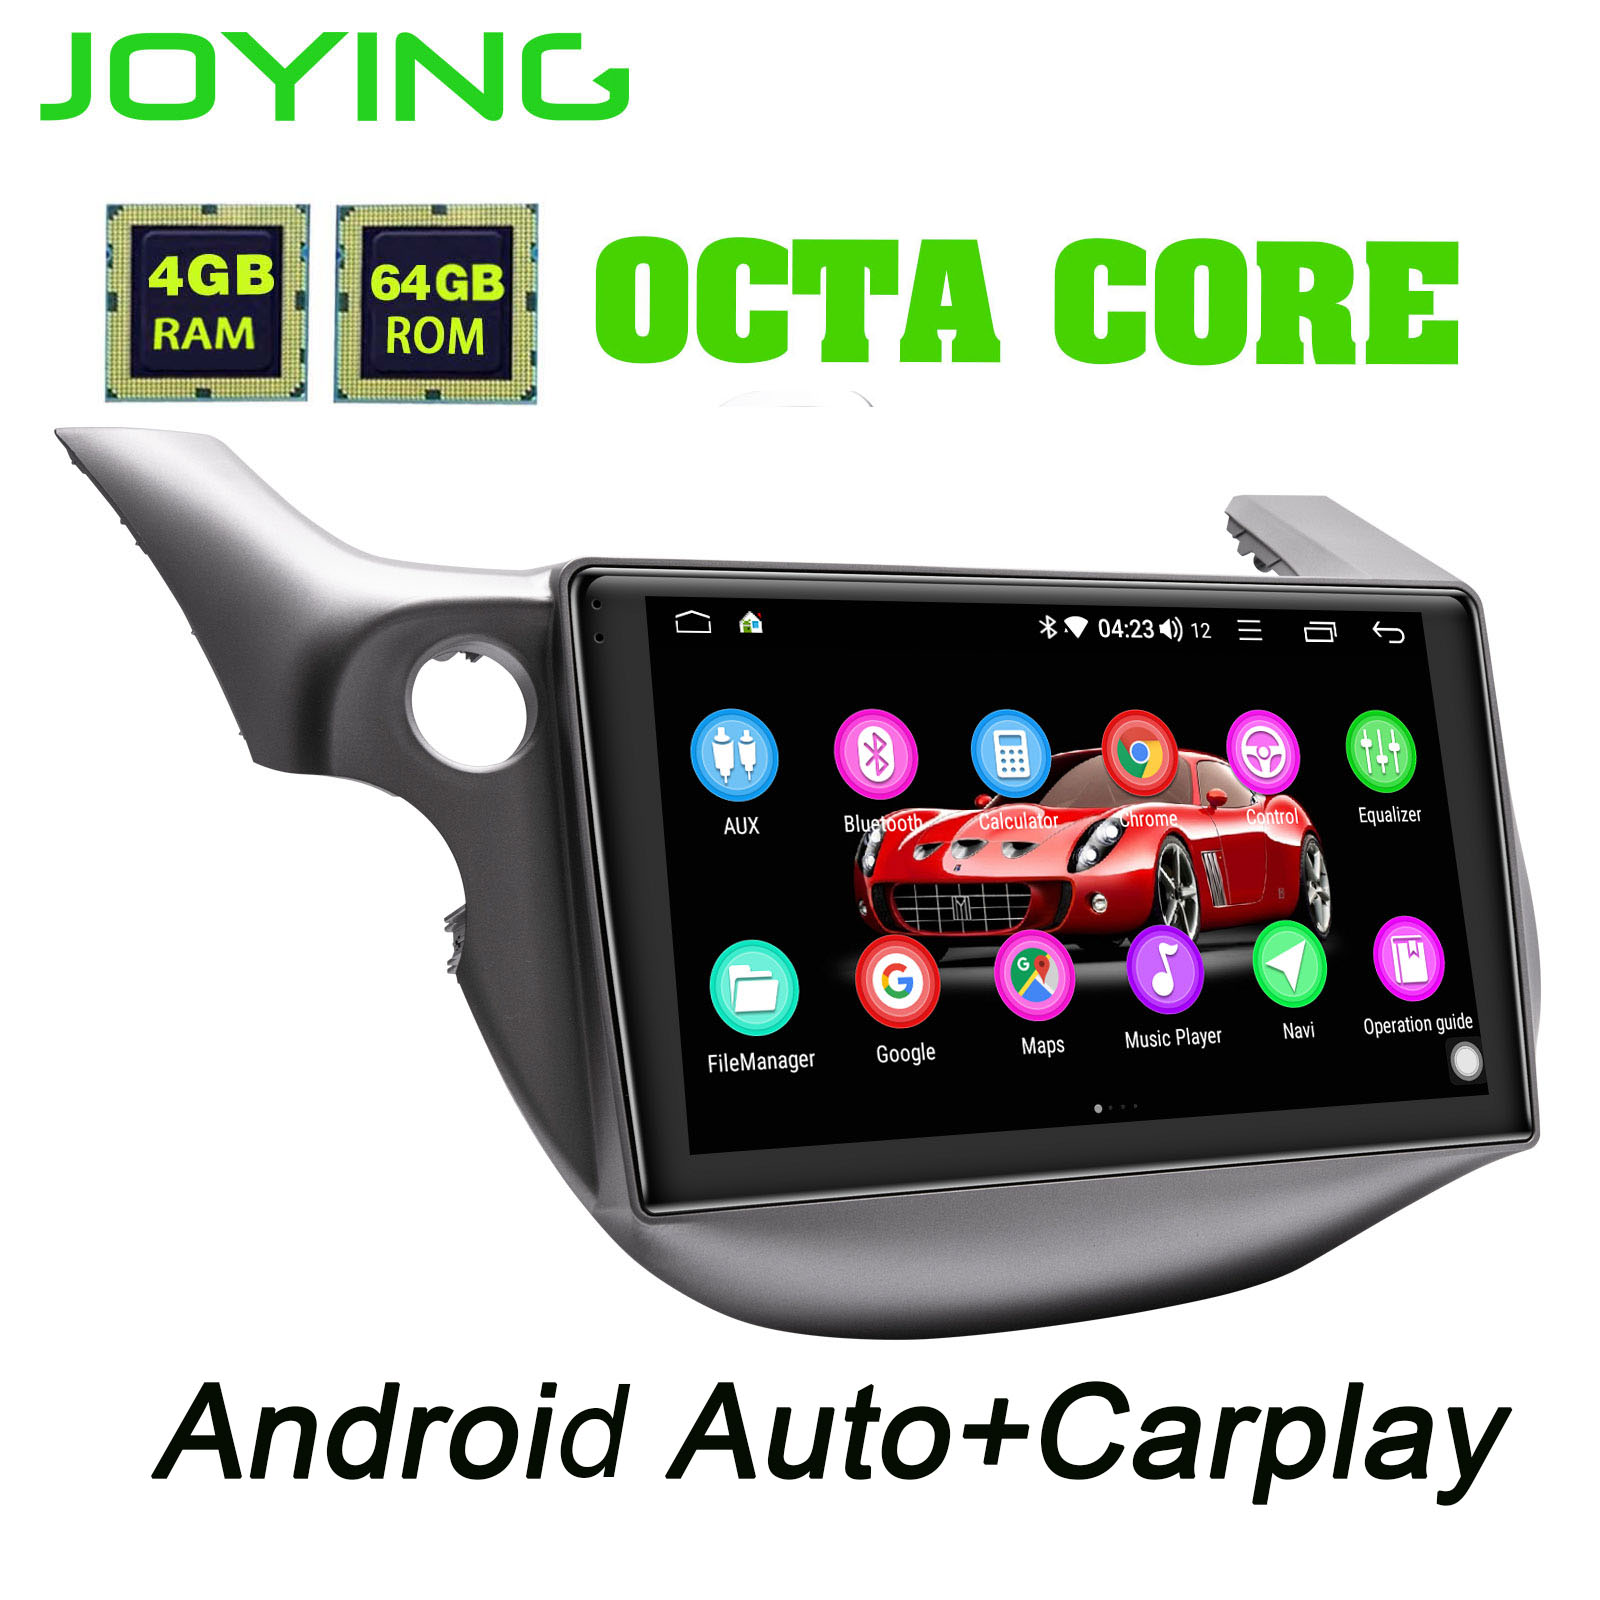 Joying 64G ROM 10.1 Android Car Radio Car DVD Player For Honda Fit 2008-2013 1 Din IPS Screen GPS Navigation Bluetooth Carplay image